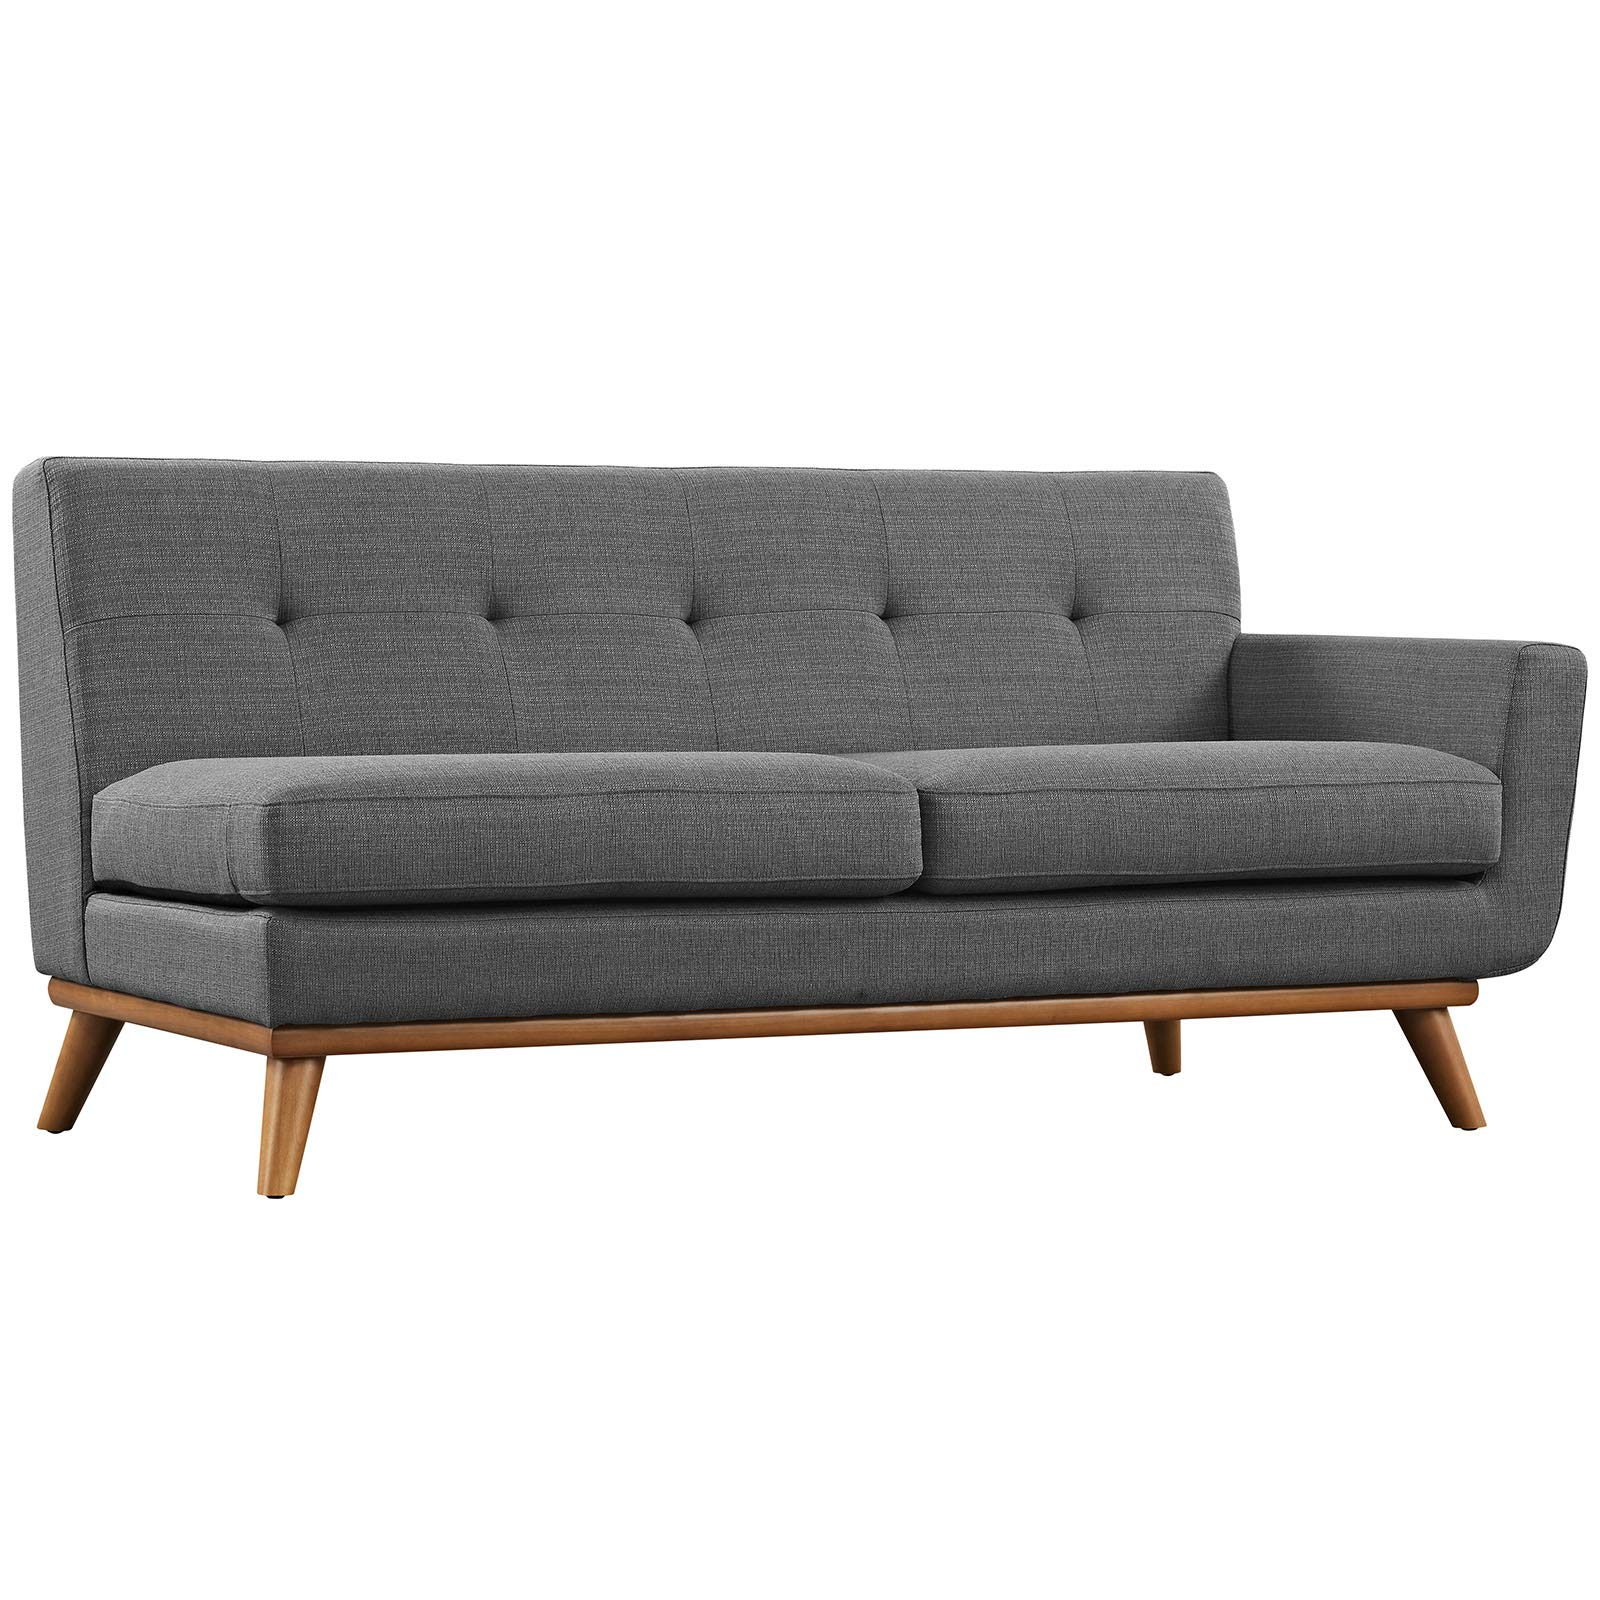 Modway Engage Mid-Century Modern Upholstered Fabric Right-Arm Loveseat In Gray